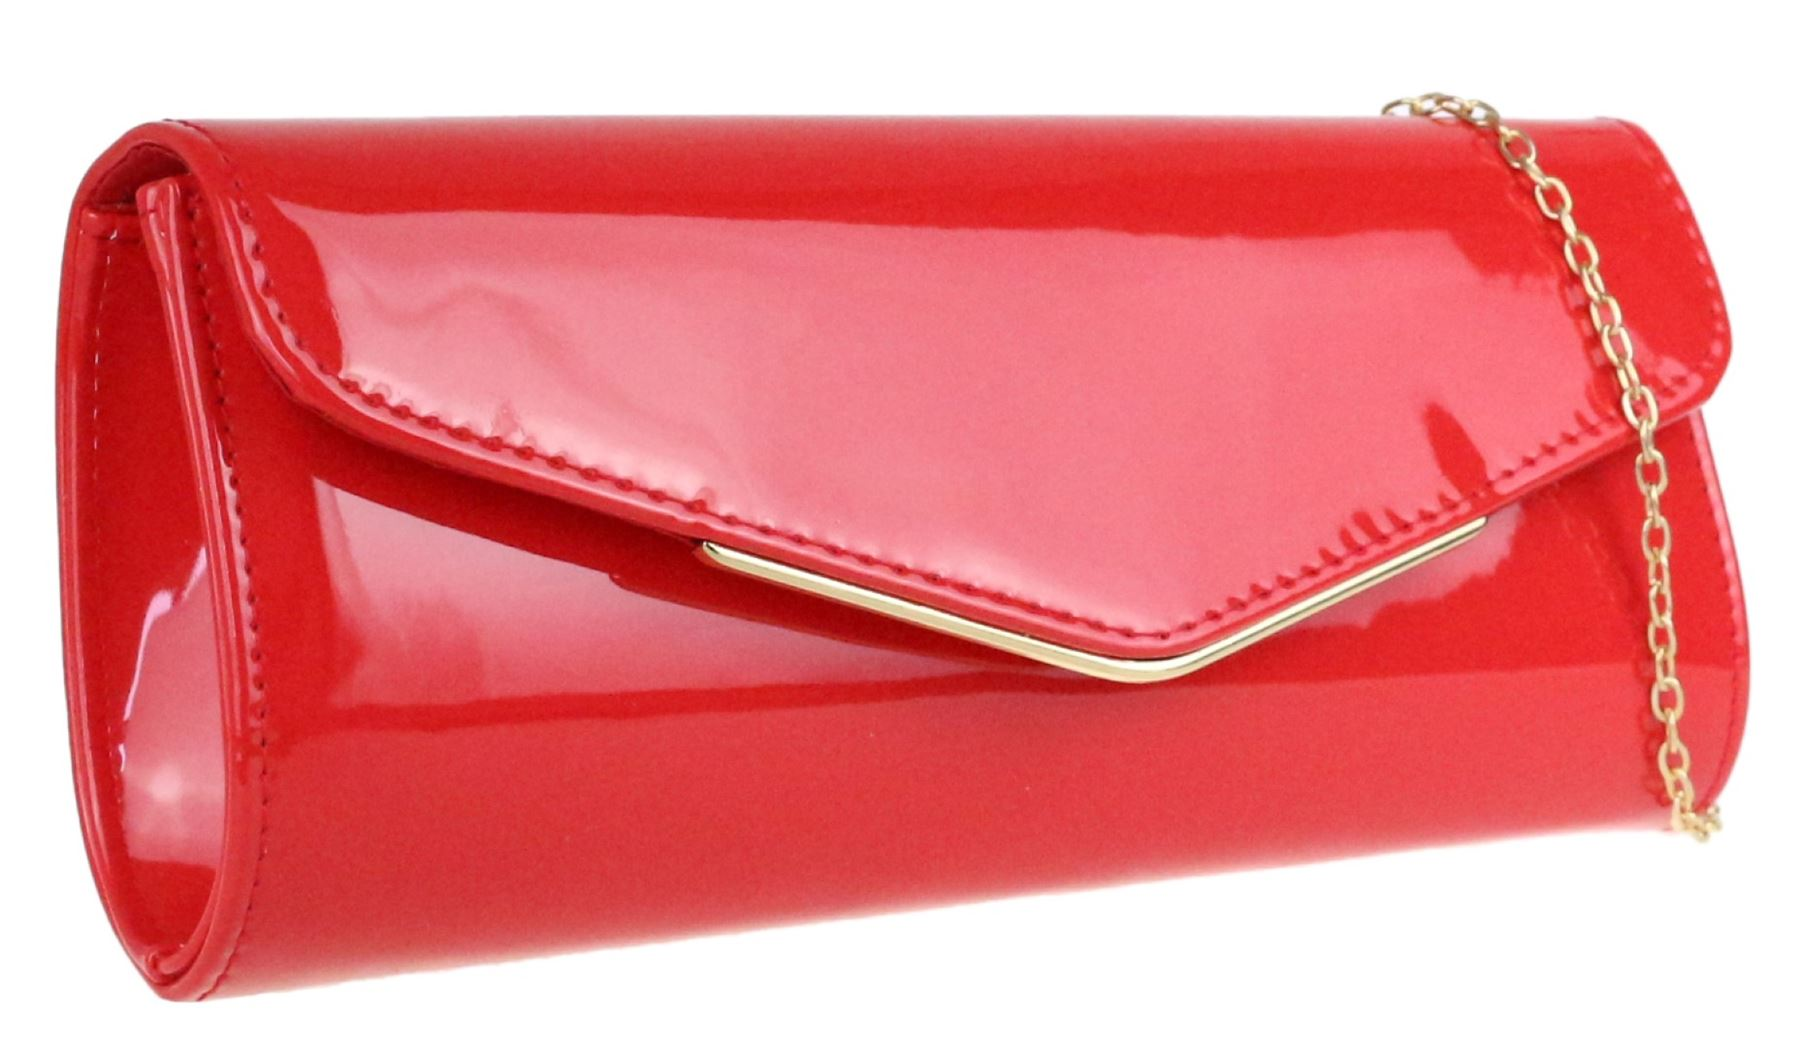 14c434b625d Plain Glossy Clutch Bag Oversized Patent Faux Leather Handbag ...